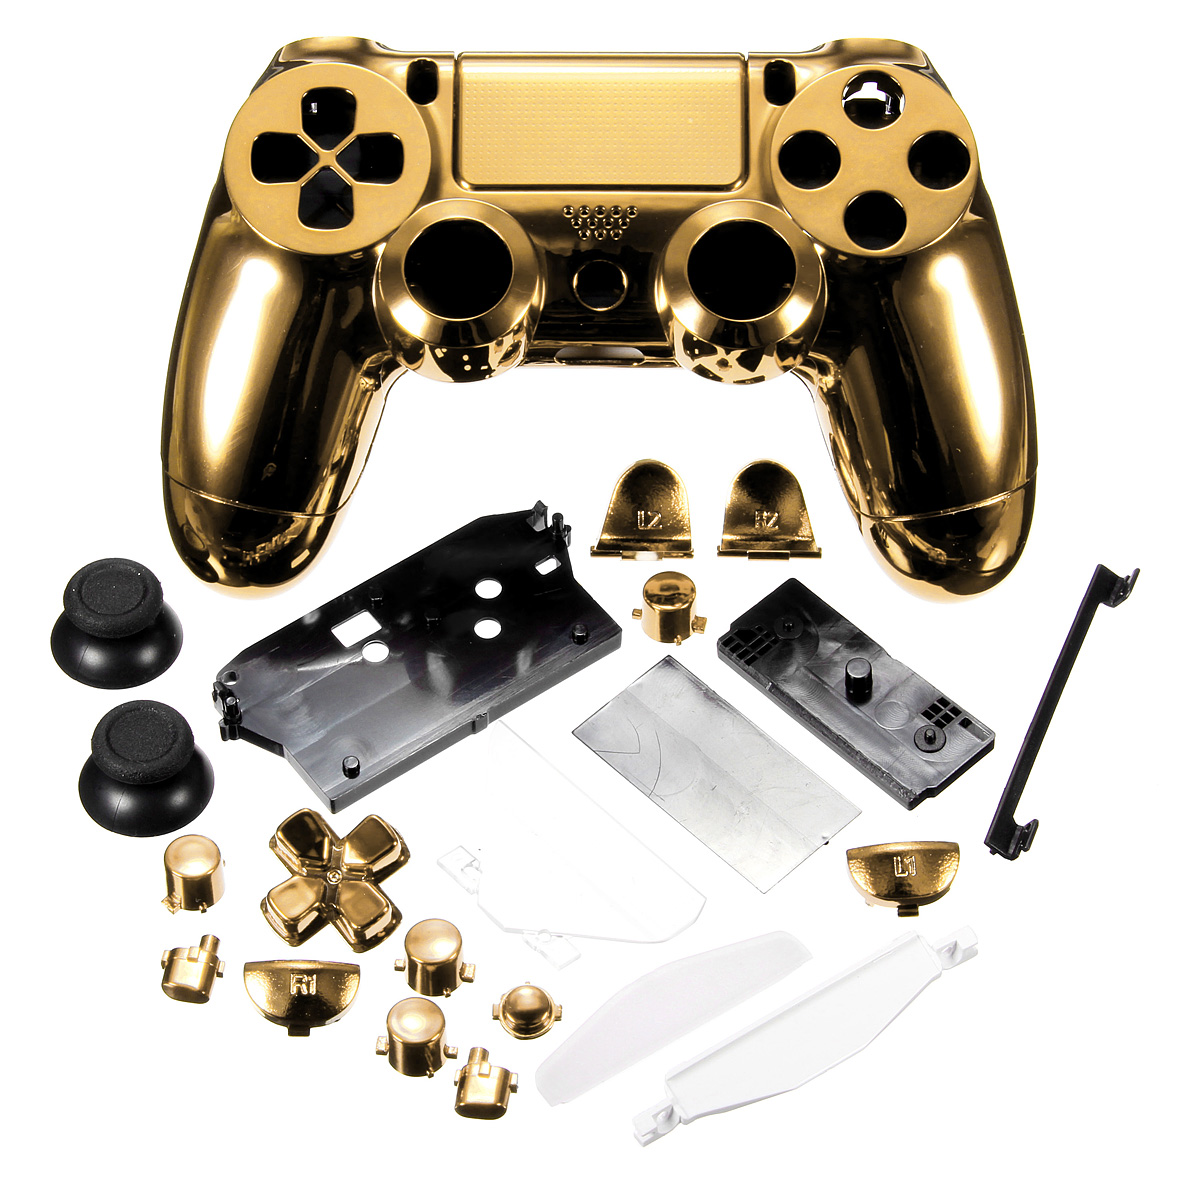 Chrome plaqu housse coque protection pour manette ps4 for Housse manette ps4